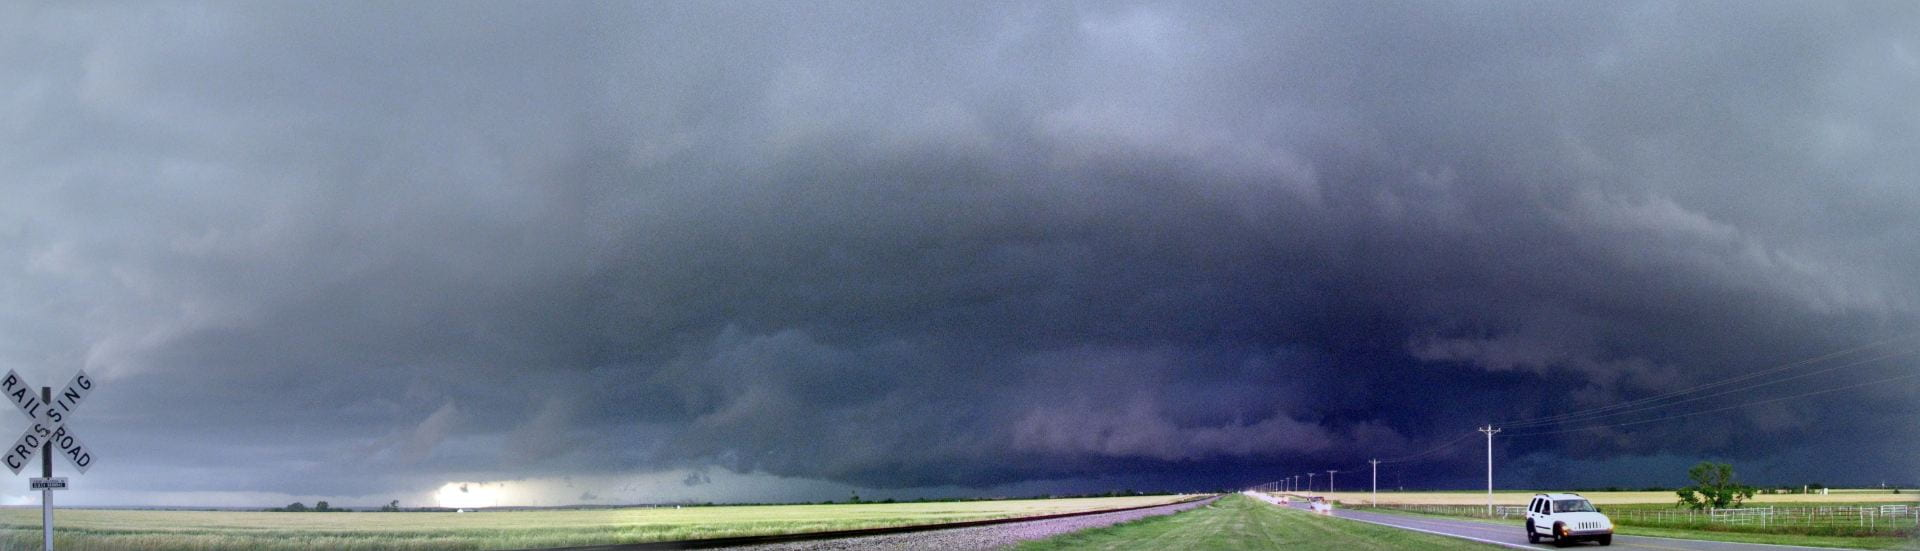 El Reno 2013 Supercell as viewed from the south. Taken by Kevin Bowley during the 2013 McGill University storm chase course